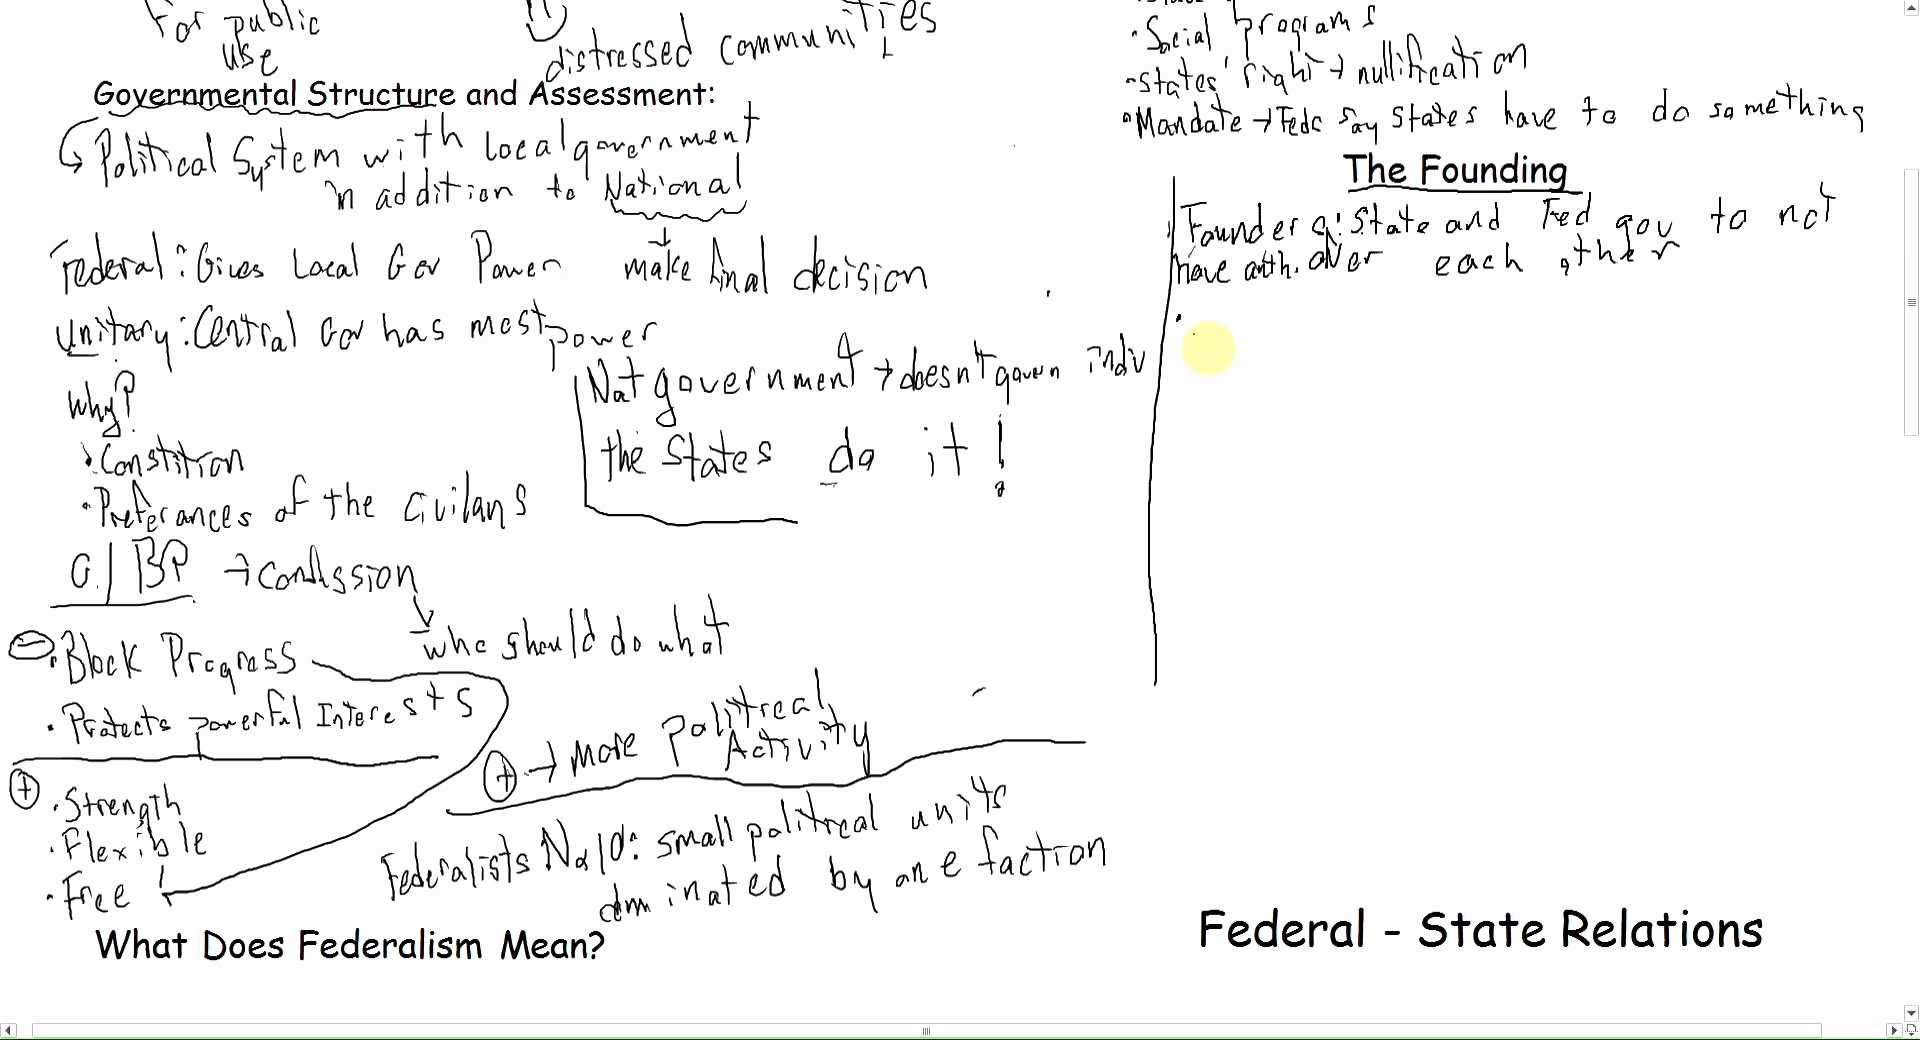 Monetary Policy Worksheet Answers Unique Chapter 3 Federalism Worksheet Answers